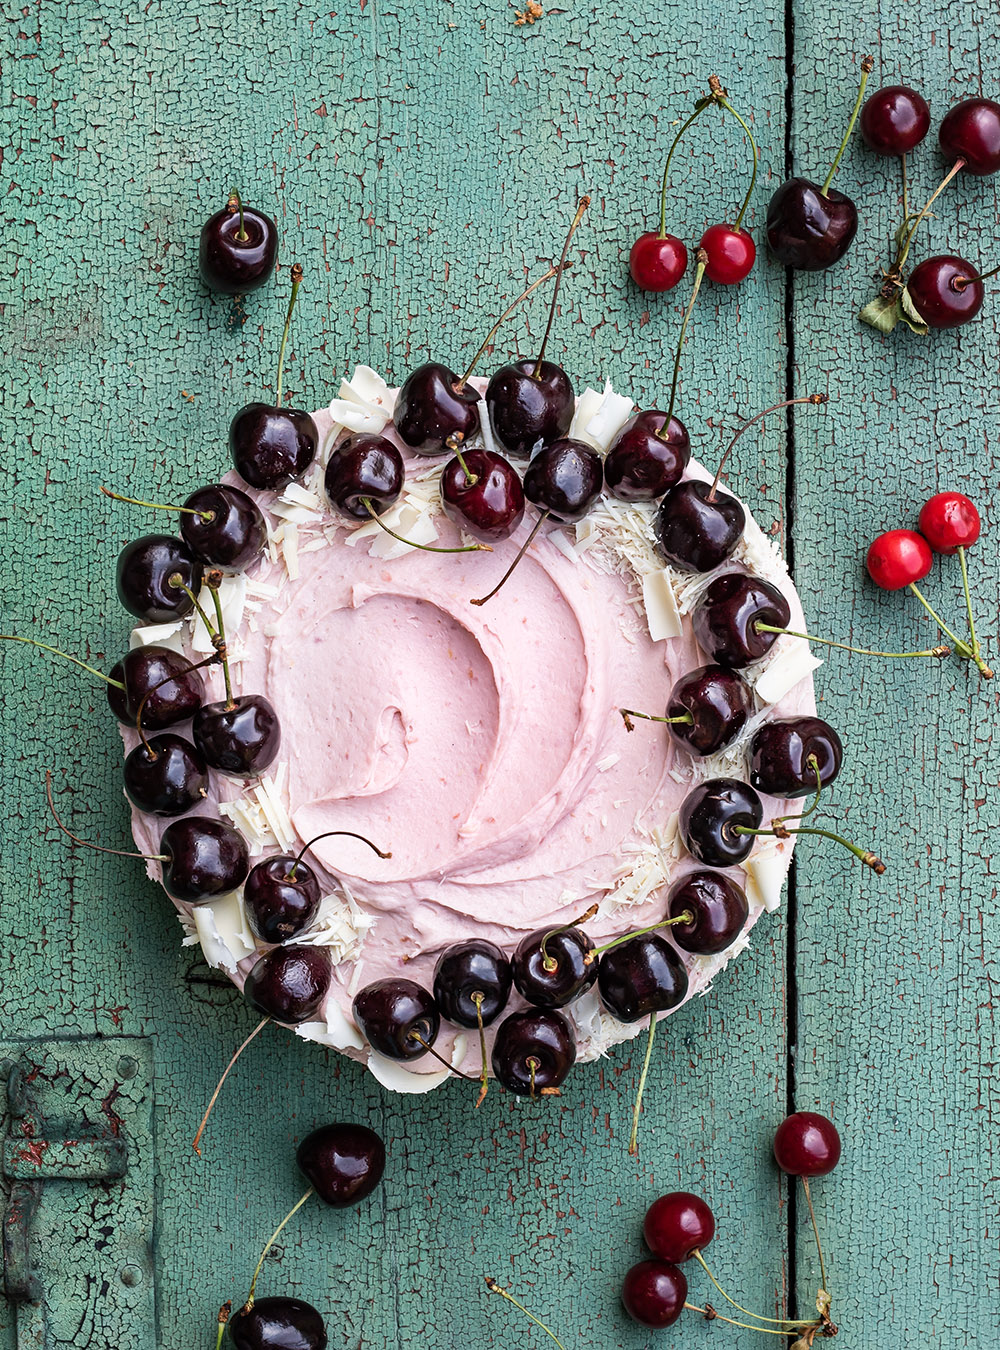 Cheesecake mit Kirschen - No Bake Cherry Dream